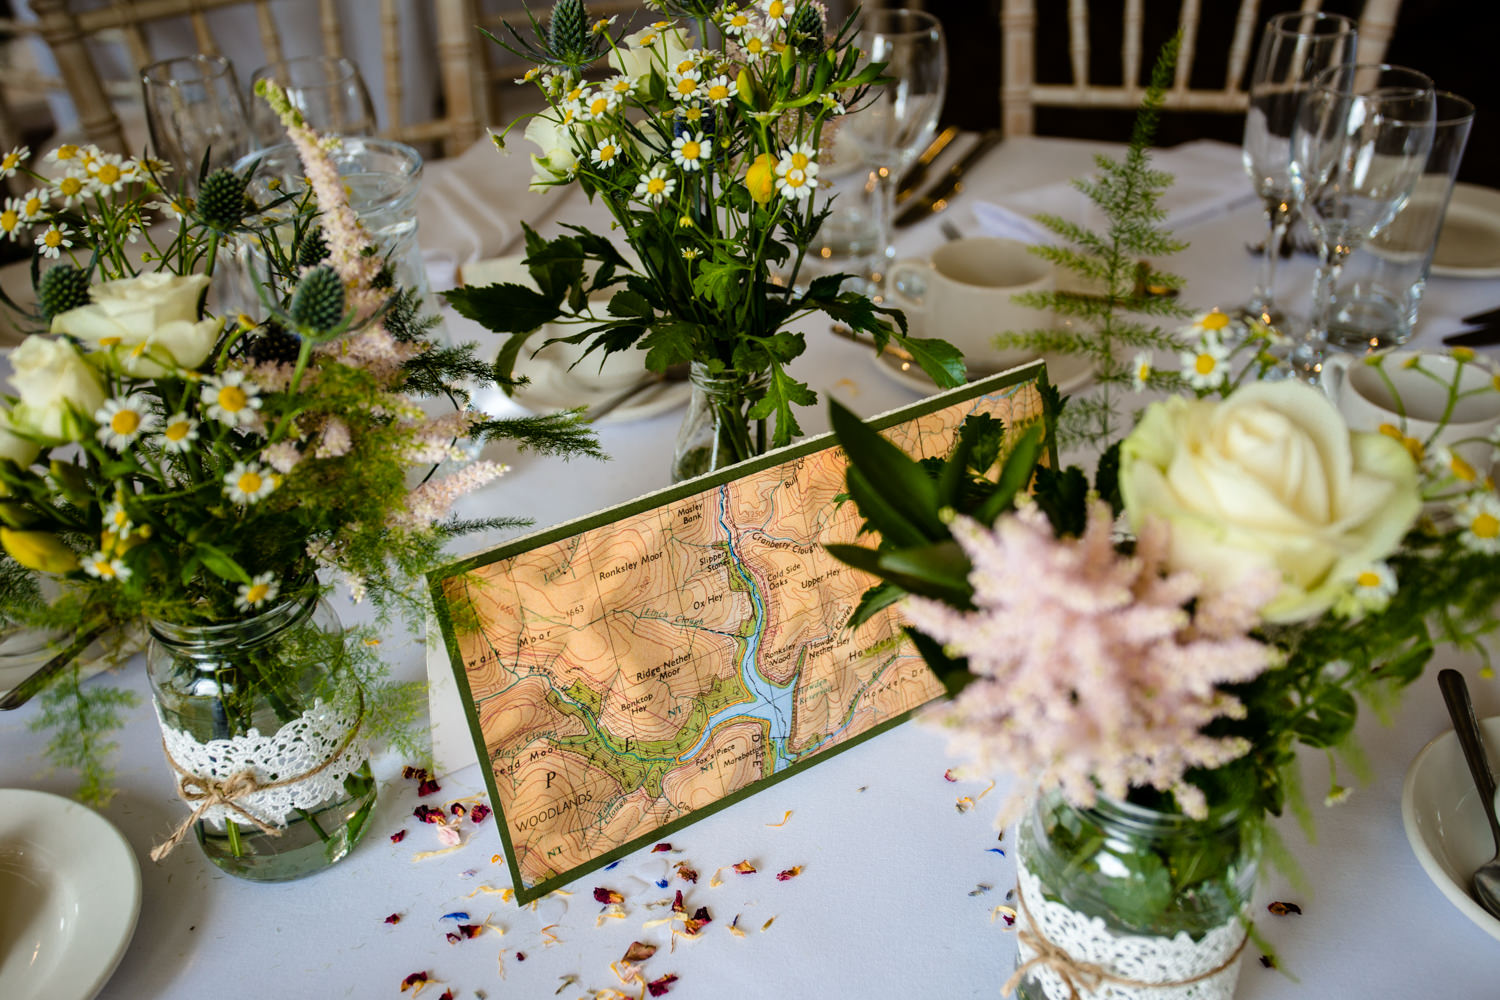 Wedding table decor inspired by The Peak District.